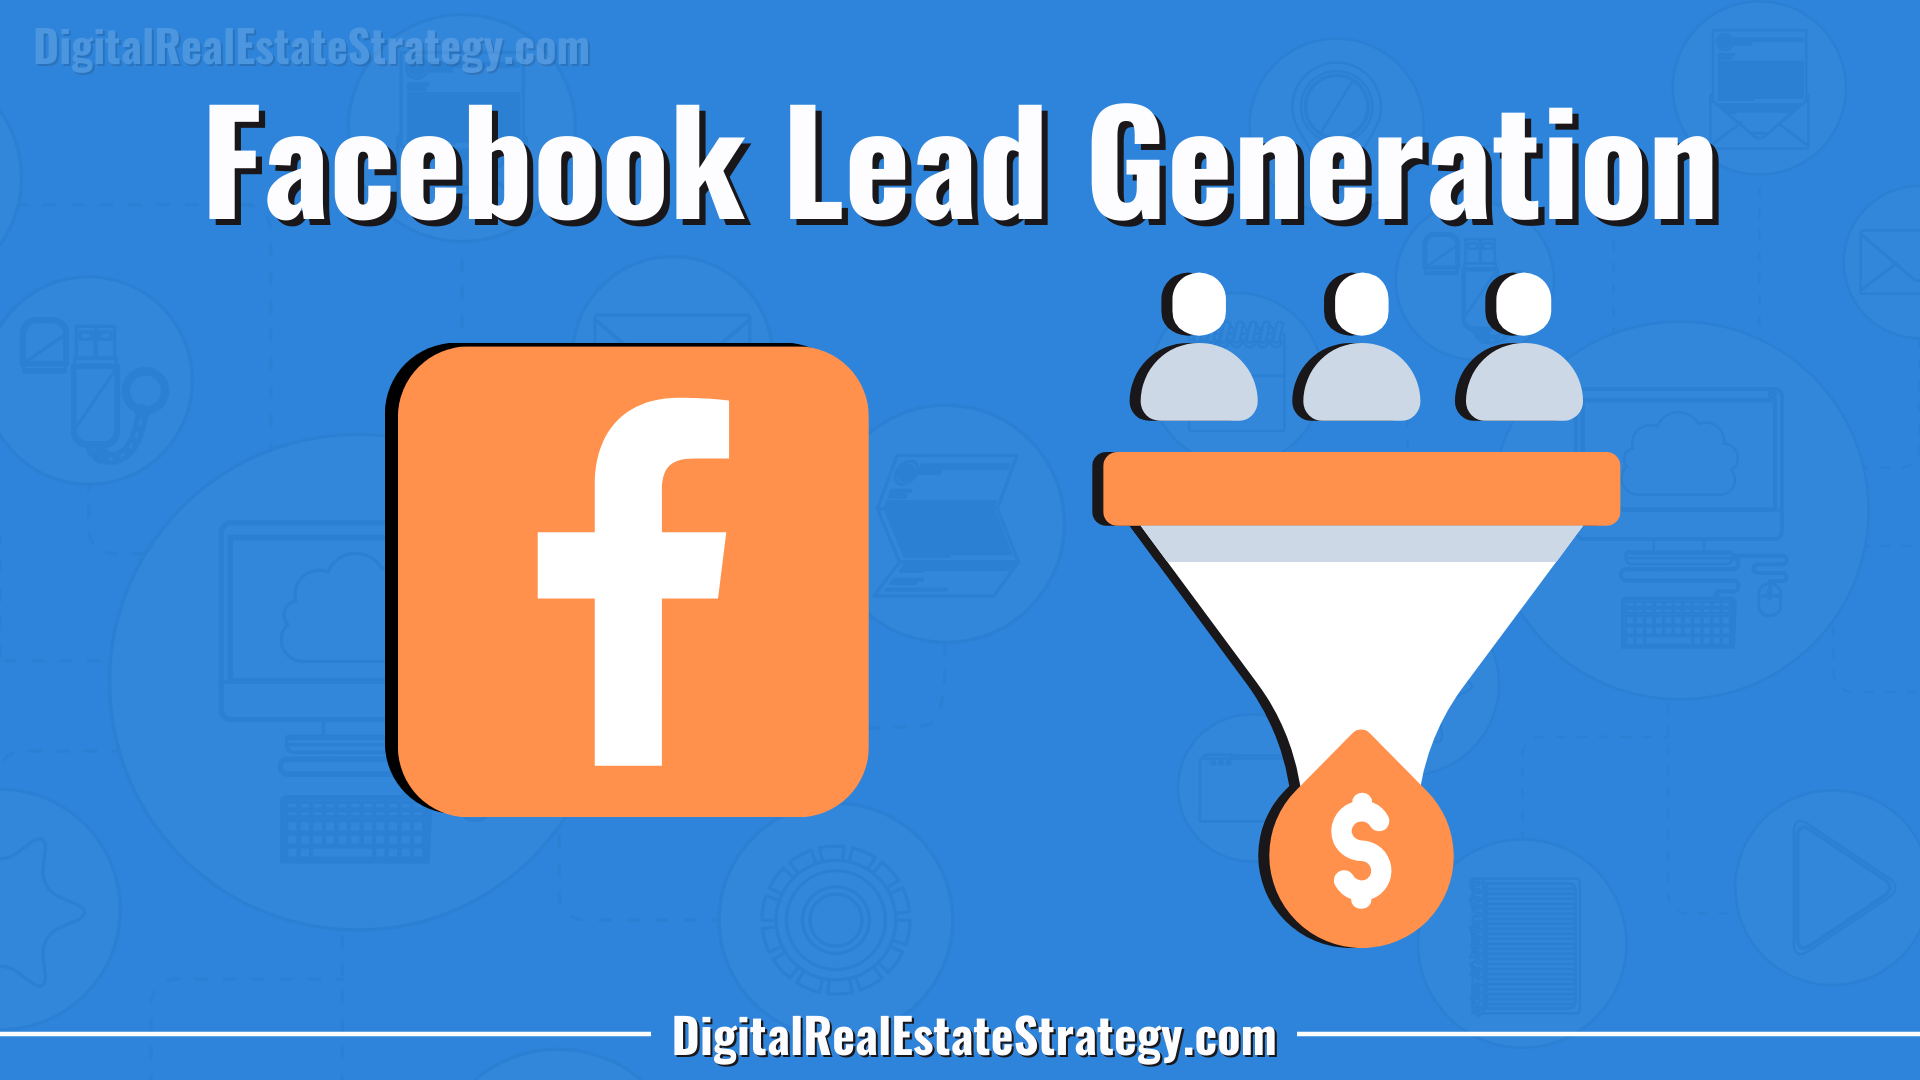 Jerome Lewis Generate Leads For Your Business Online Sell Online Stuff Memberships Subscriptions Affiliate Marketing Digital Real Estate Strategy Facebook Lead Generation